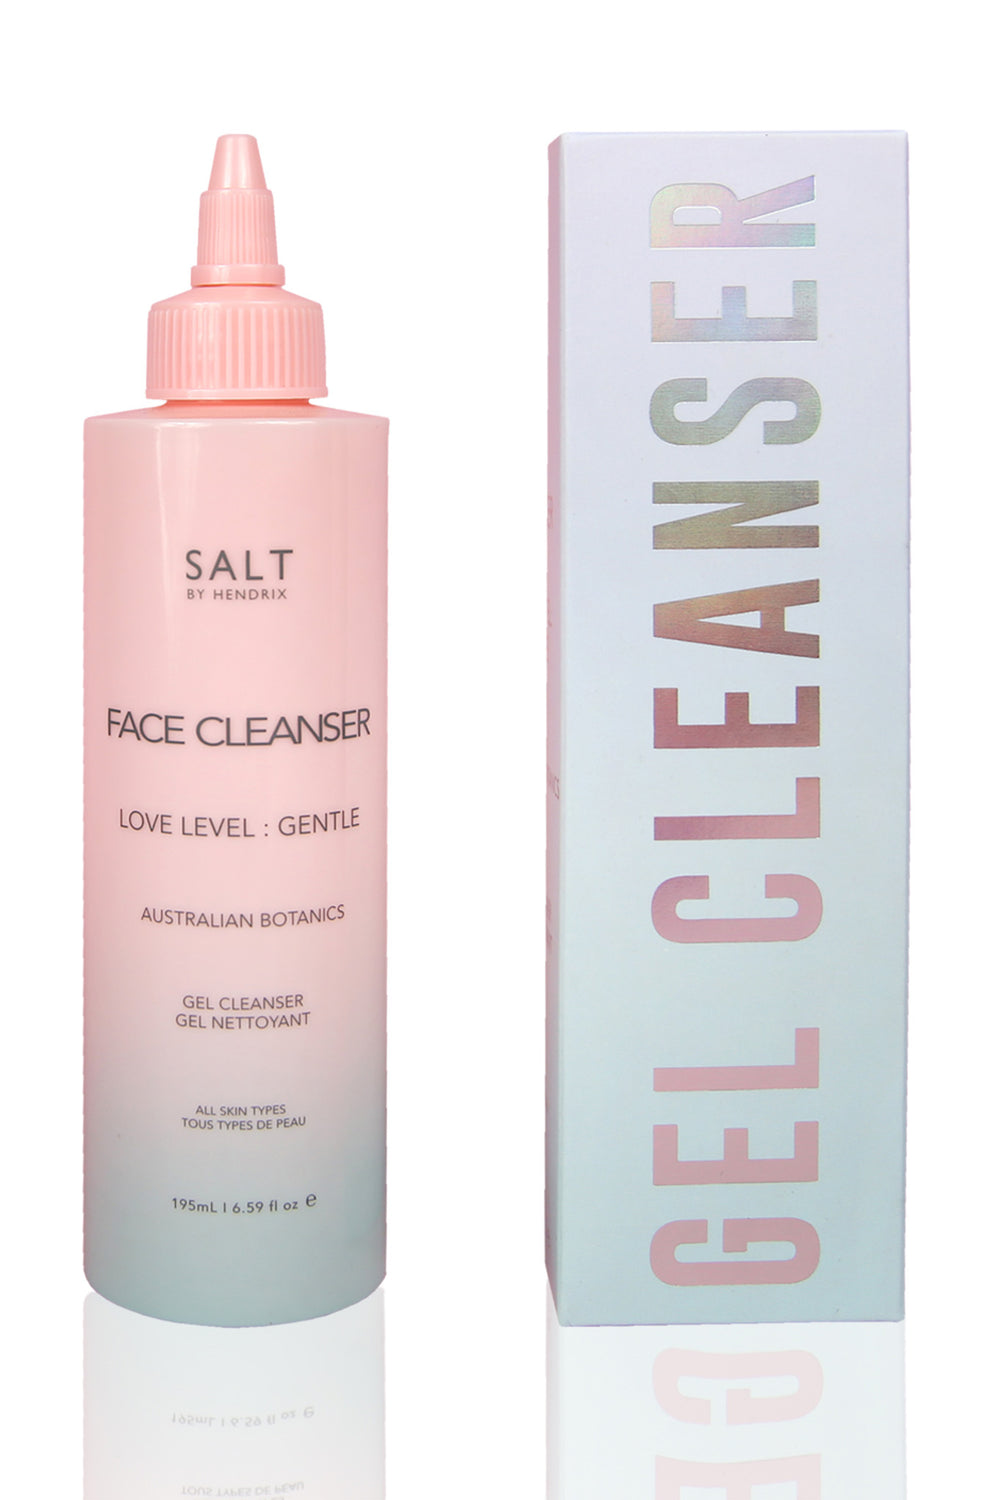 Salt by Hendrix - Face Cleanser Gel